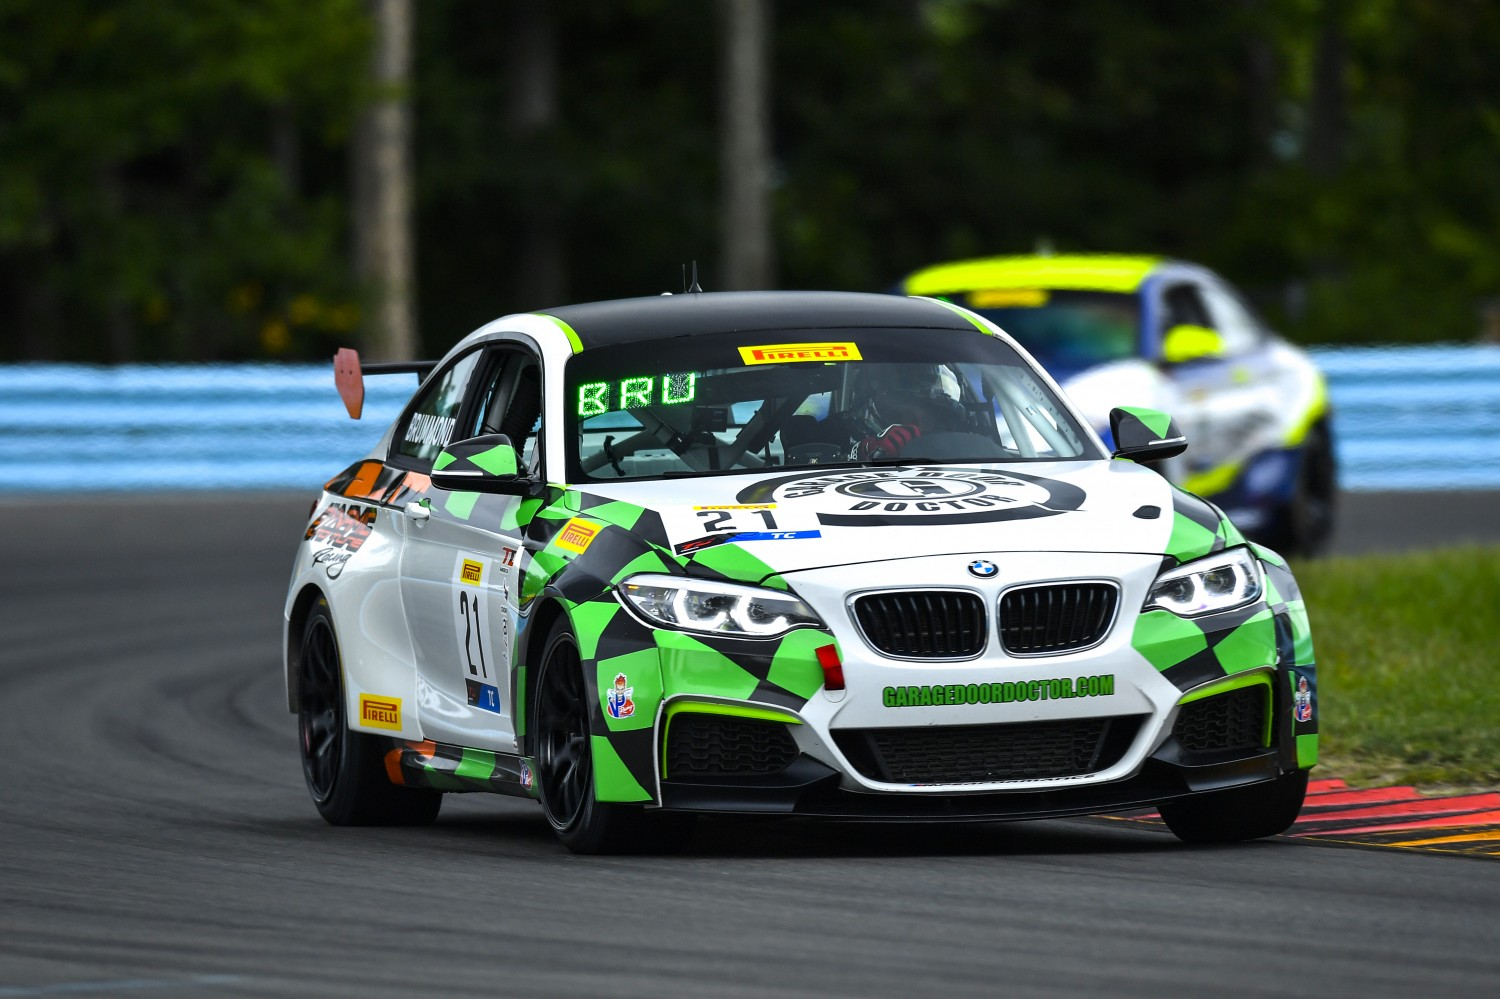 #21 BMW M240iR Cup of Mark Brummond, Auto Technic Racing, Watkins Glen World Challenge America, Watkins Glen NY  | SRO Motorsports Group